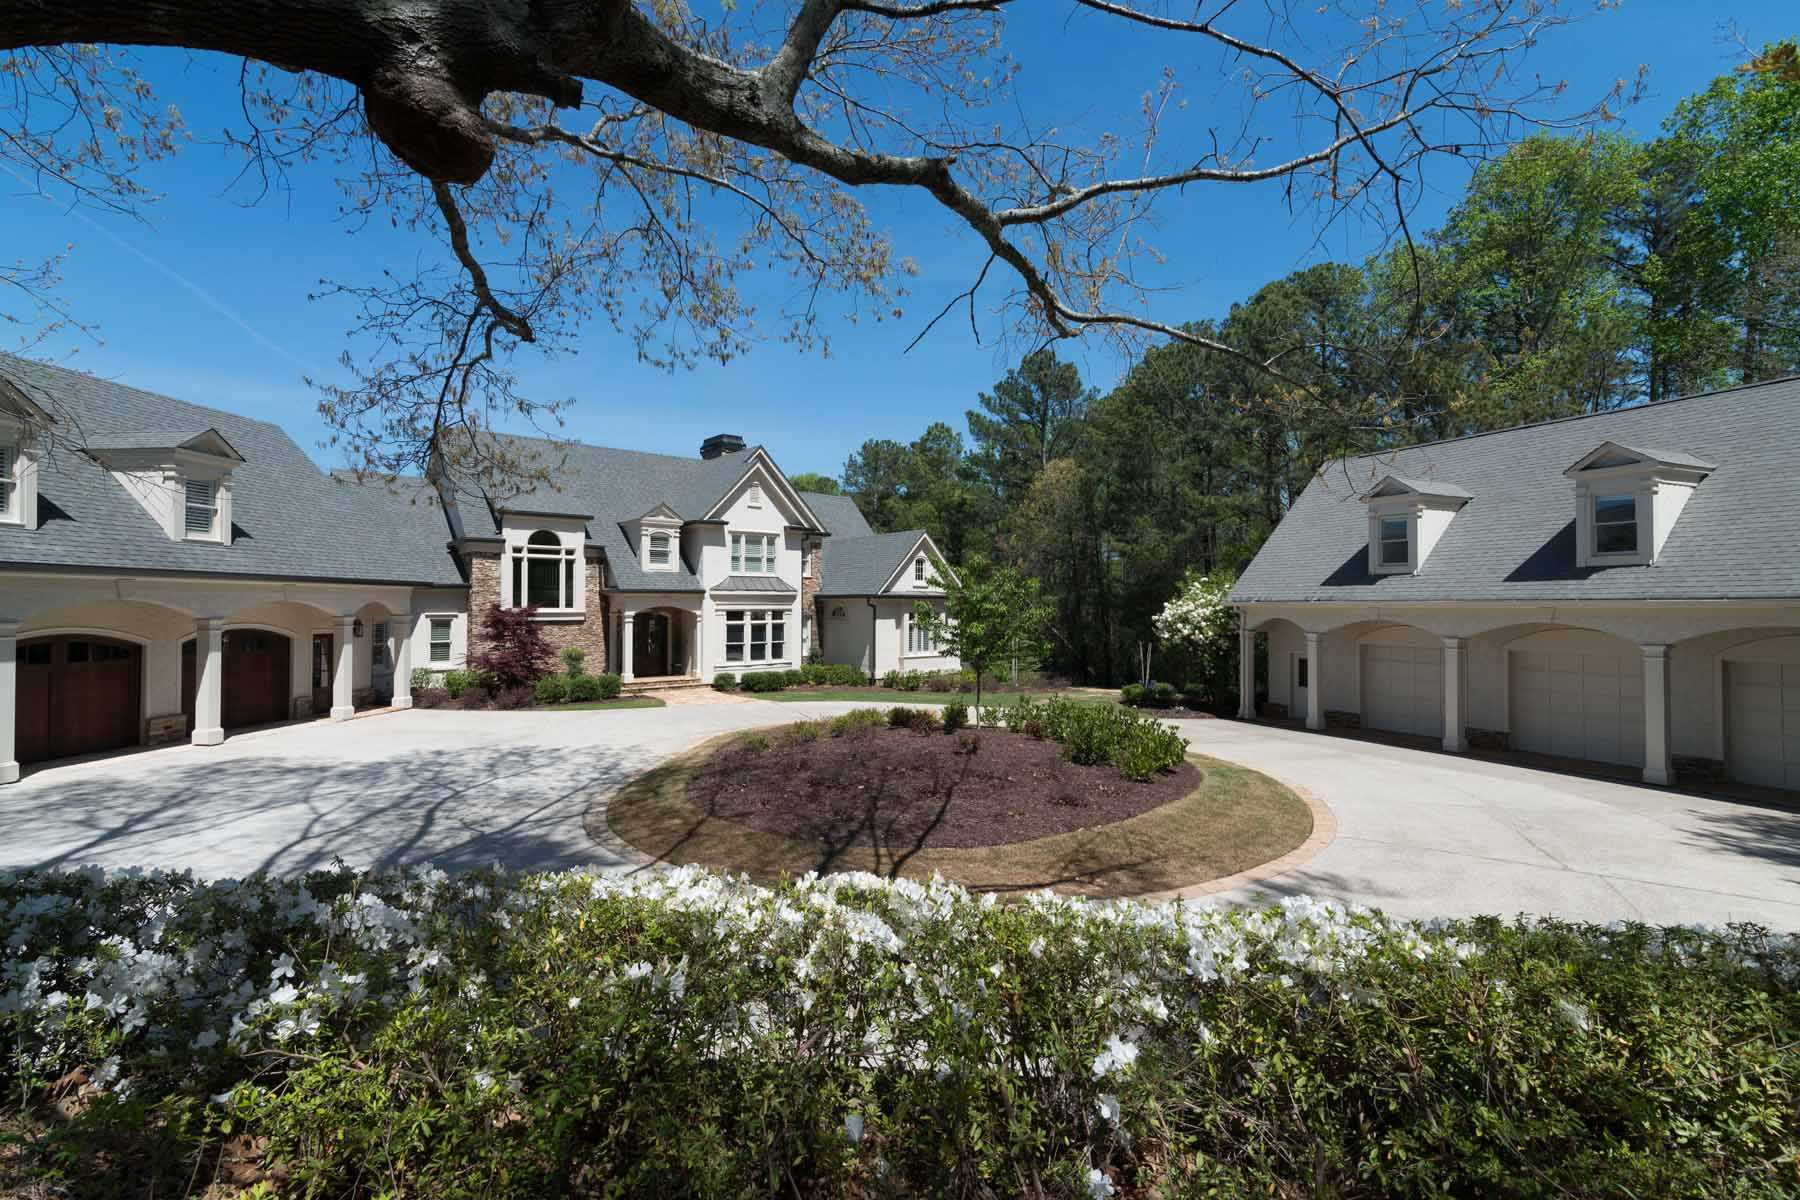 Ferme / Ranch / Plantation pour l Vente à Elegant Gated Equestrian Estate 13165 Birmingham Highway Milton, Georgia 30004 États-Unis